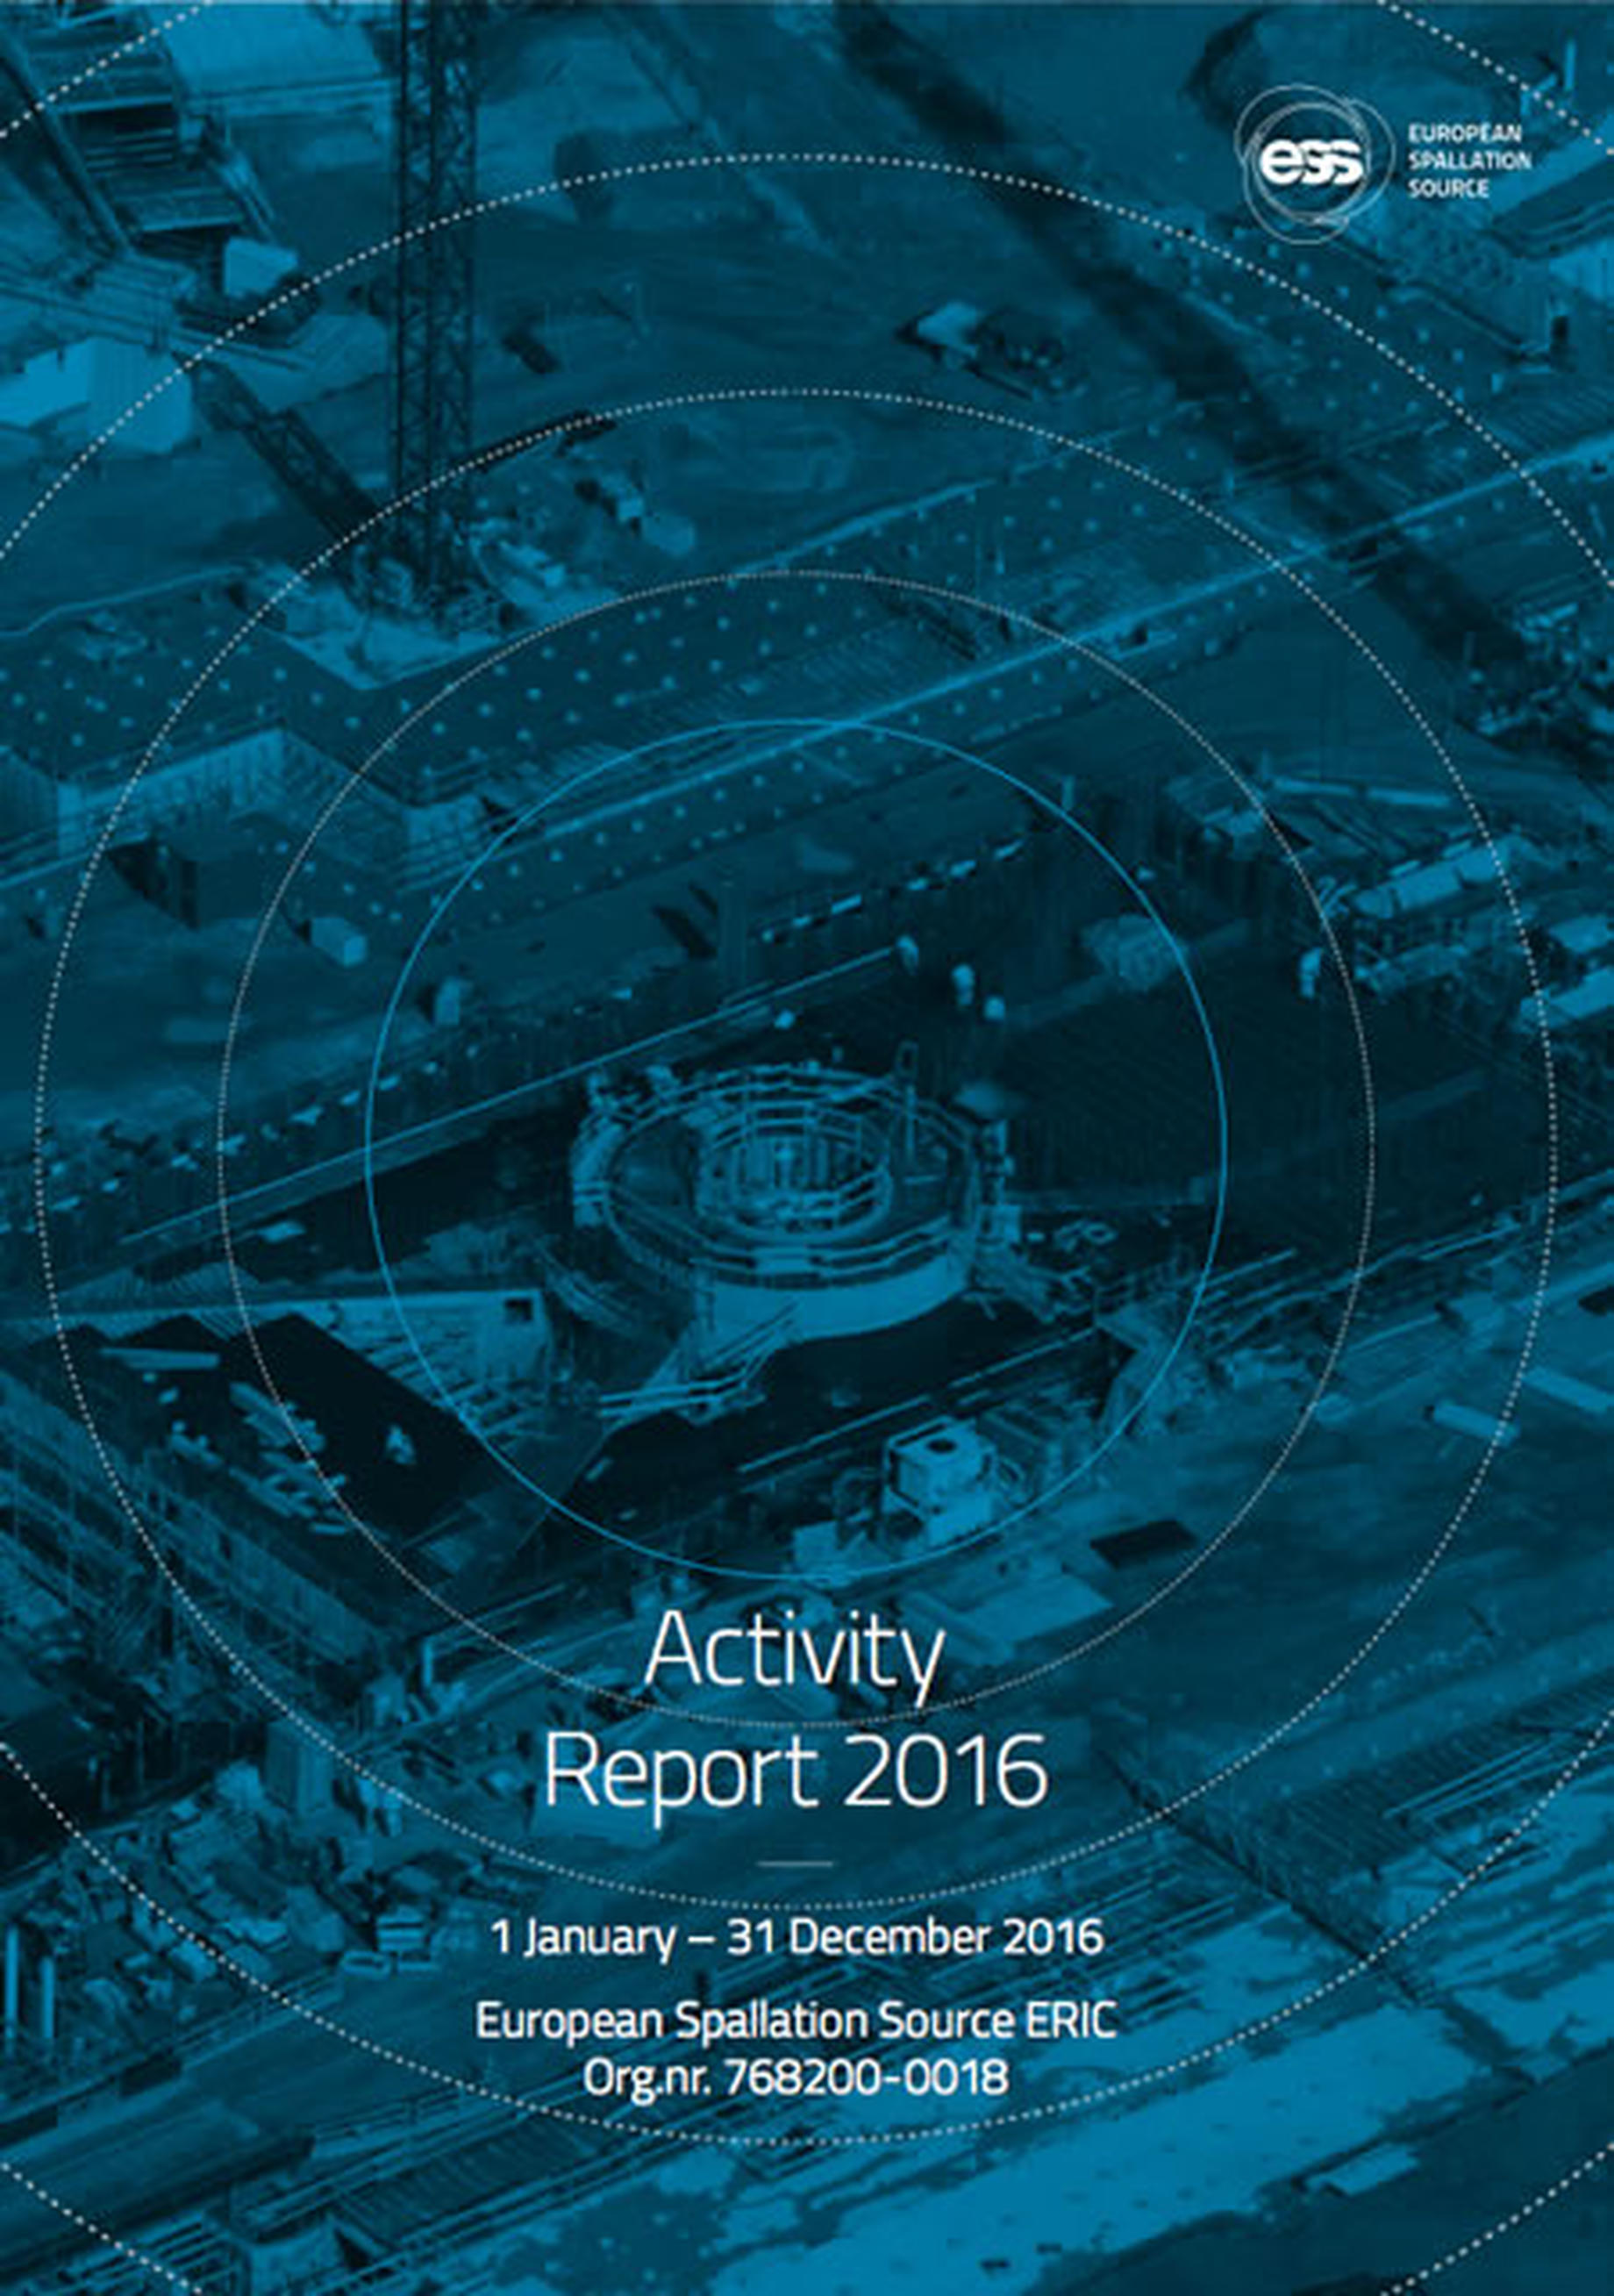 ActivityReport2016_cover.jpg